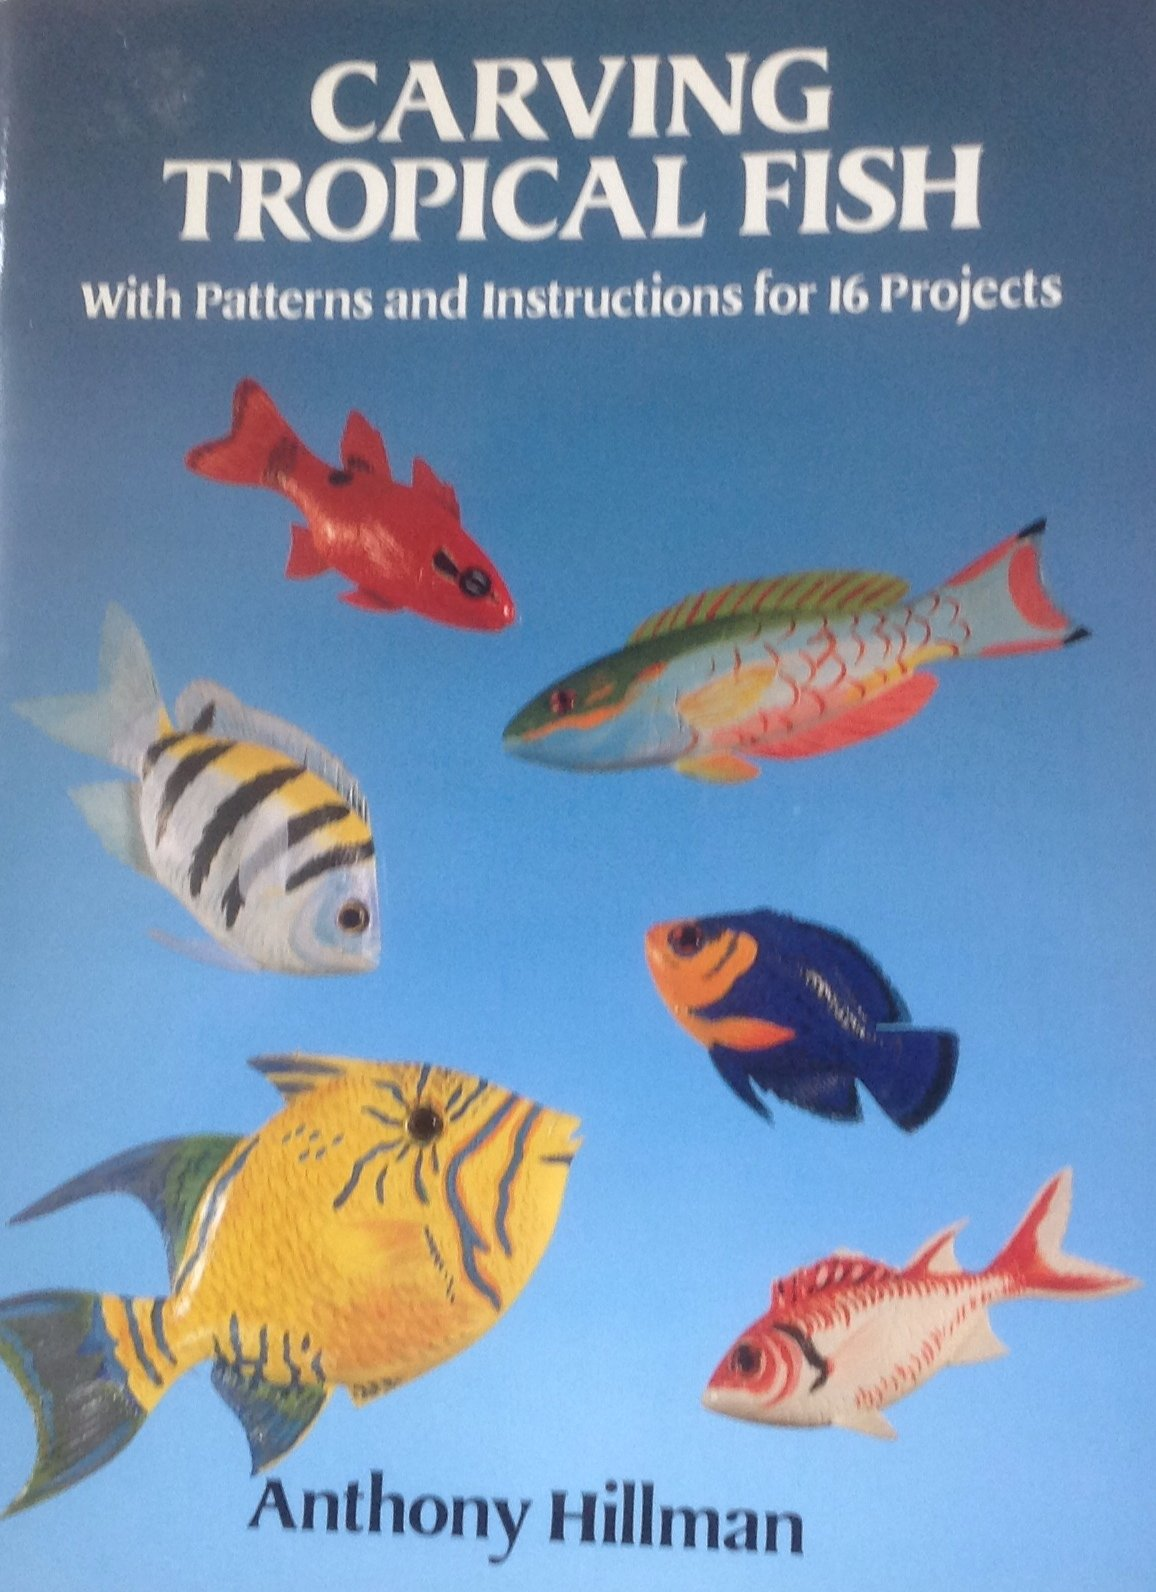 Carving Tropical Fish: With Patterns and Instructions for 16 Projects:  Anthony Hillman: 9780486270944: Amazon.com: Books